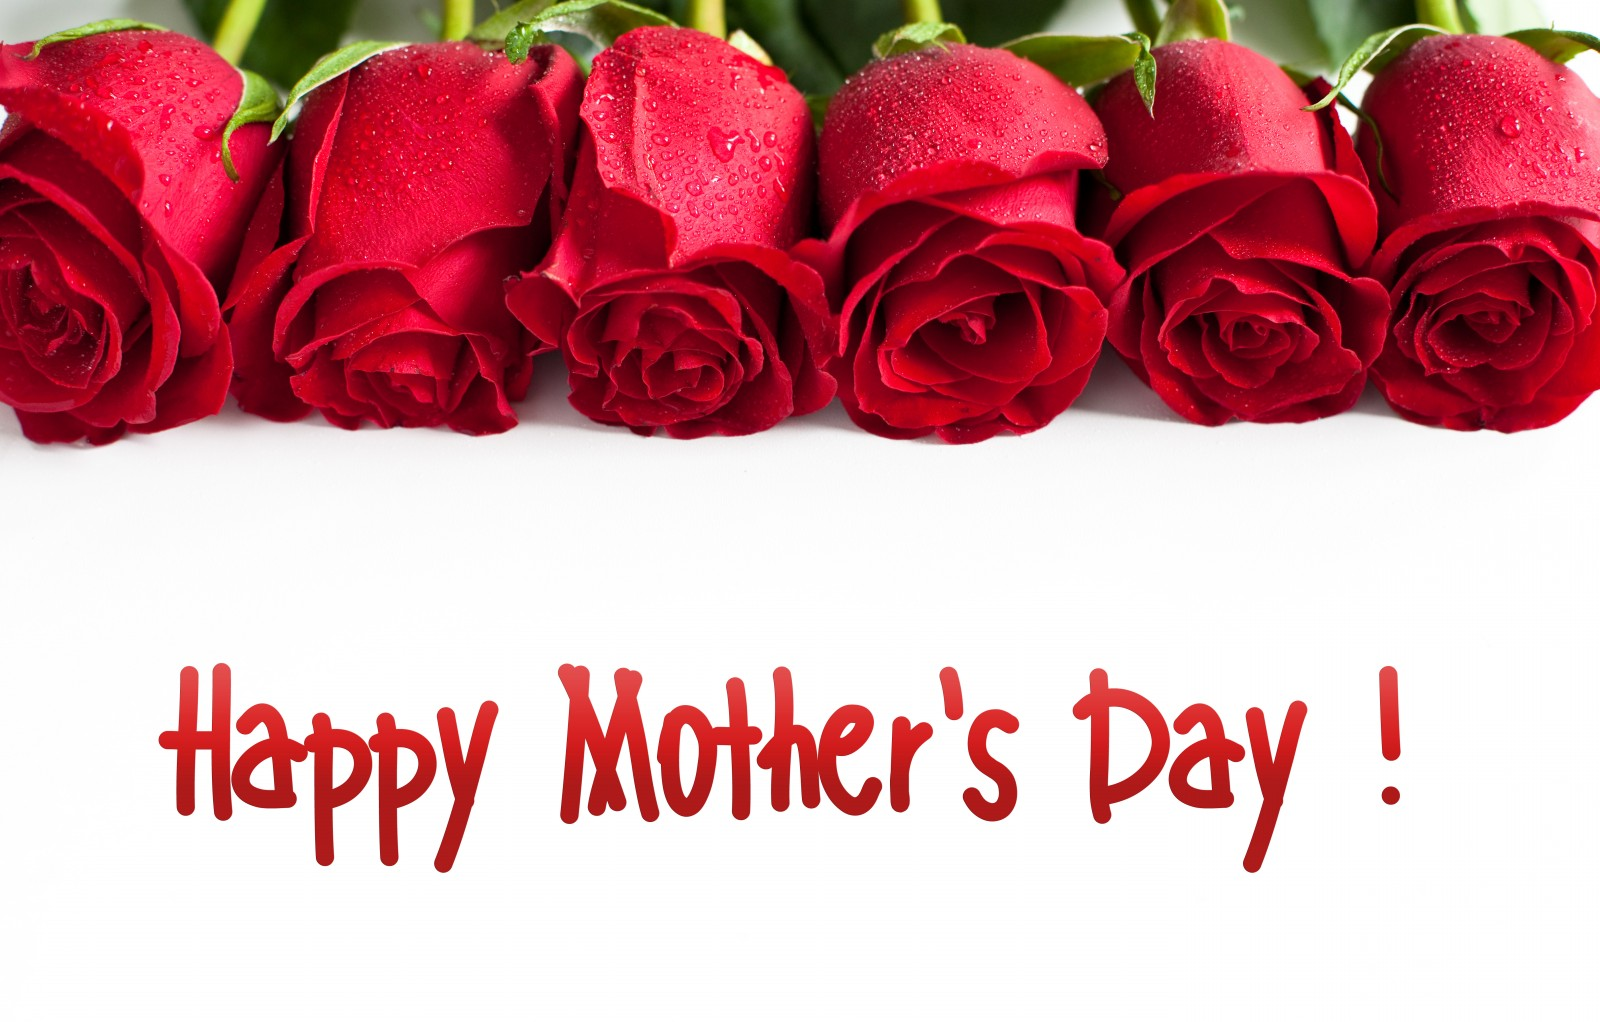 HQ Mother's Day Wallpapers | File 264.59Kb